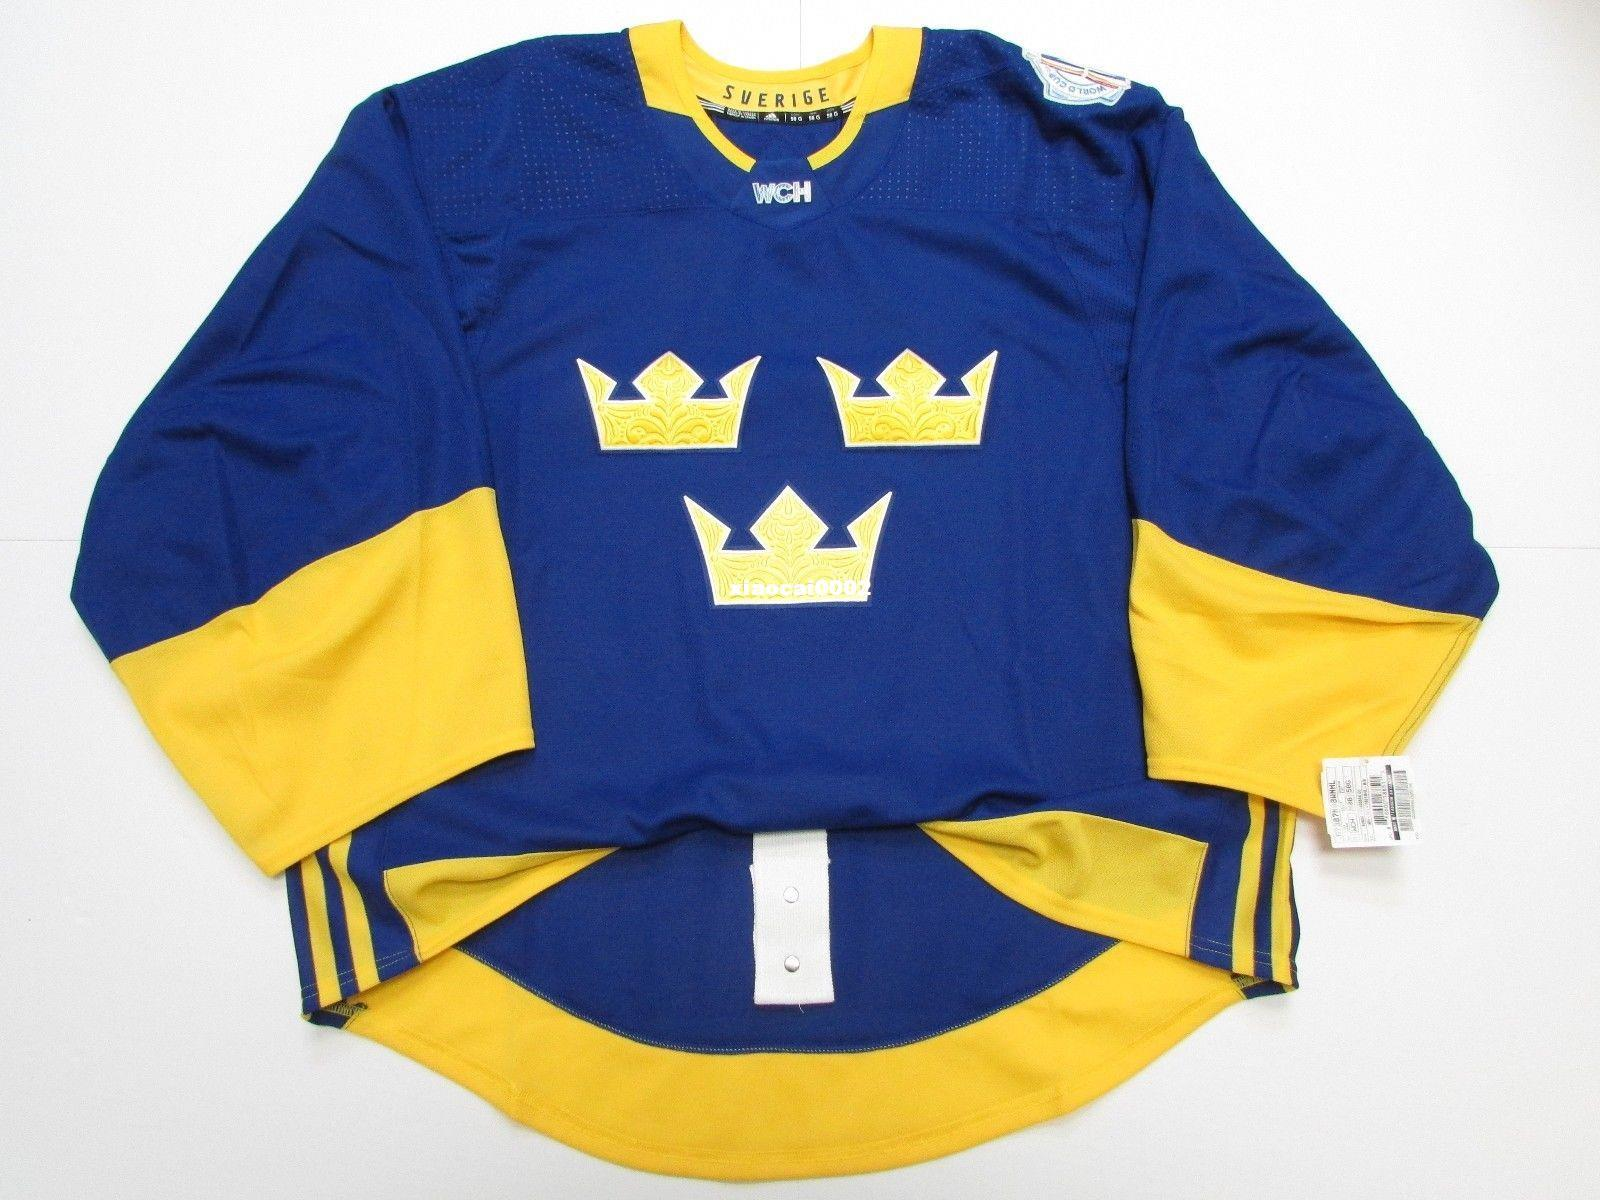 Cheap Custom SWEDEN BLUE 2016 WORLD CUP OF HOCKEY TEAM ISSUED JERSEY GOALIE  CUT 60 Mens Stitched Personalized Hockey Jerseys UK 2019 From Xiaocai0002 2b798ba17